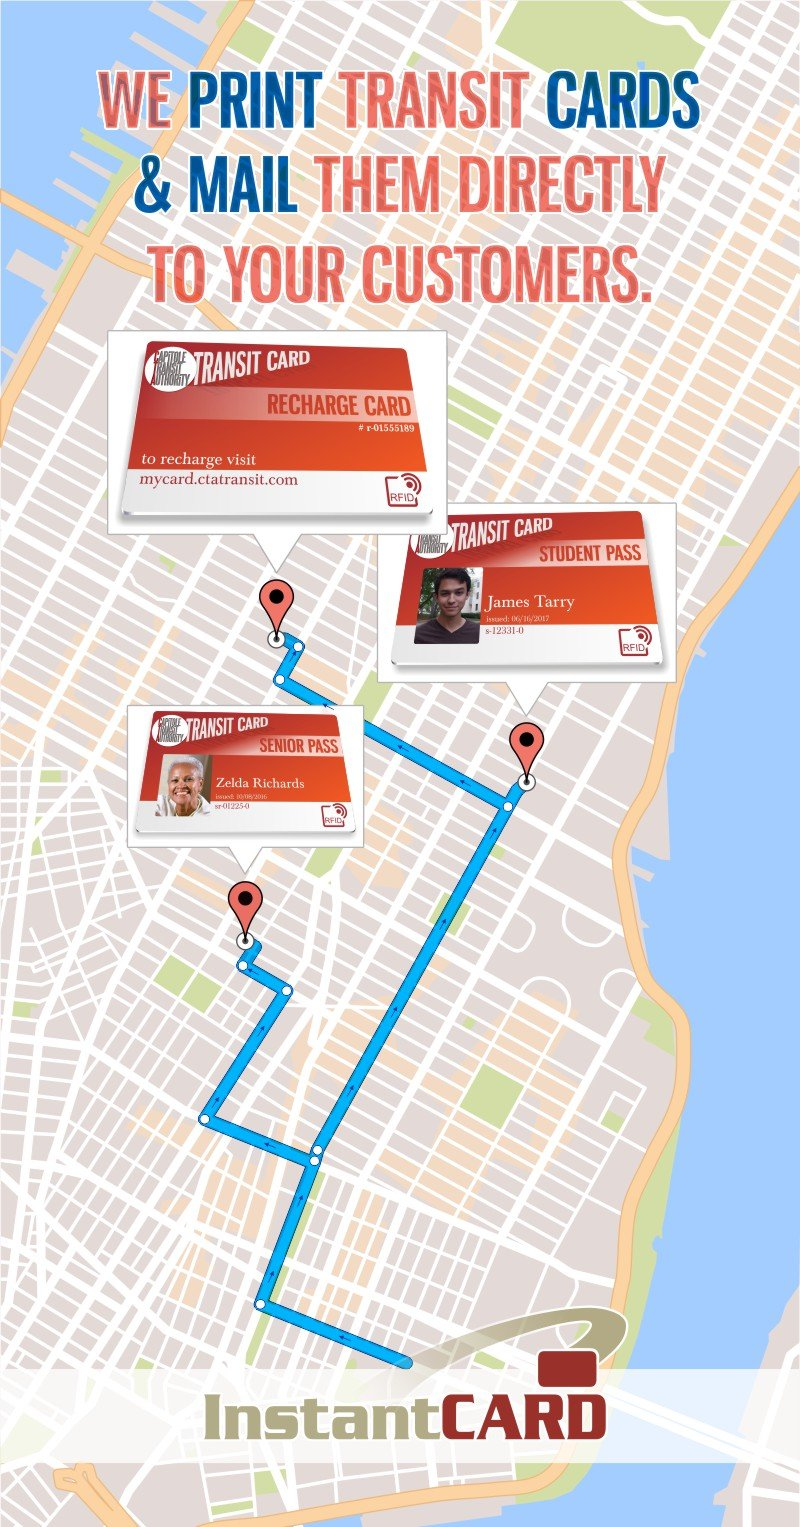 We print transit cards & mail then directly to your customers